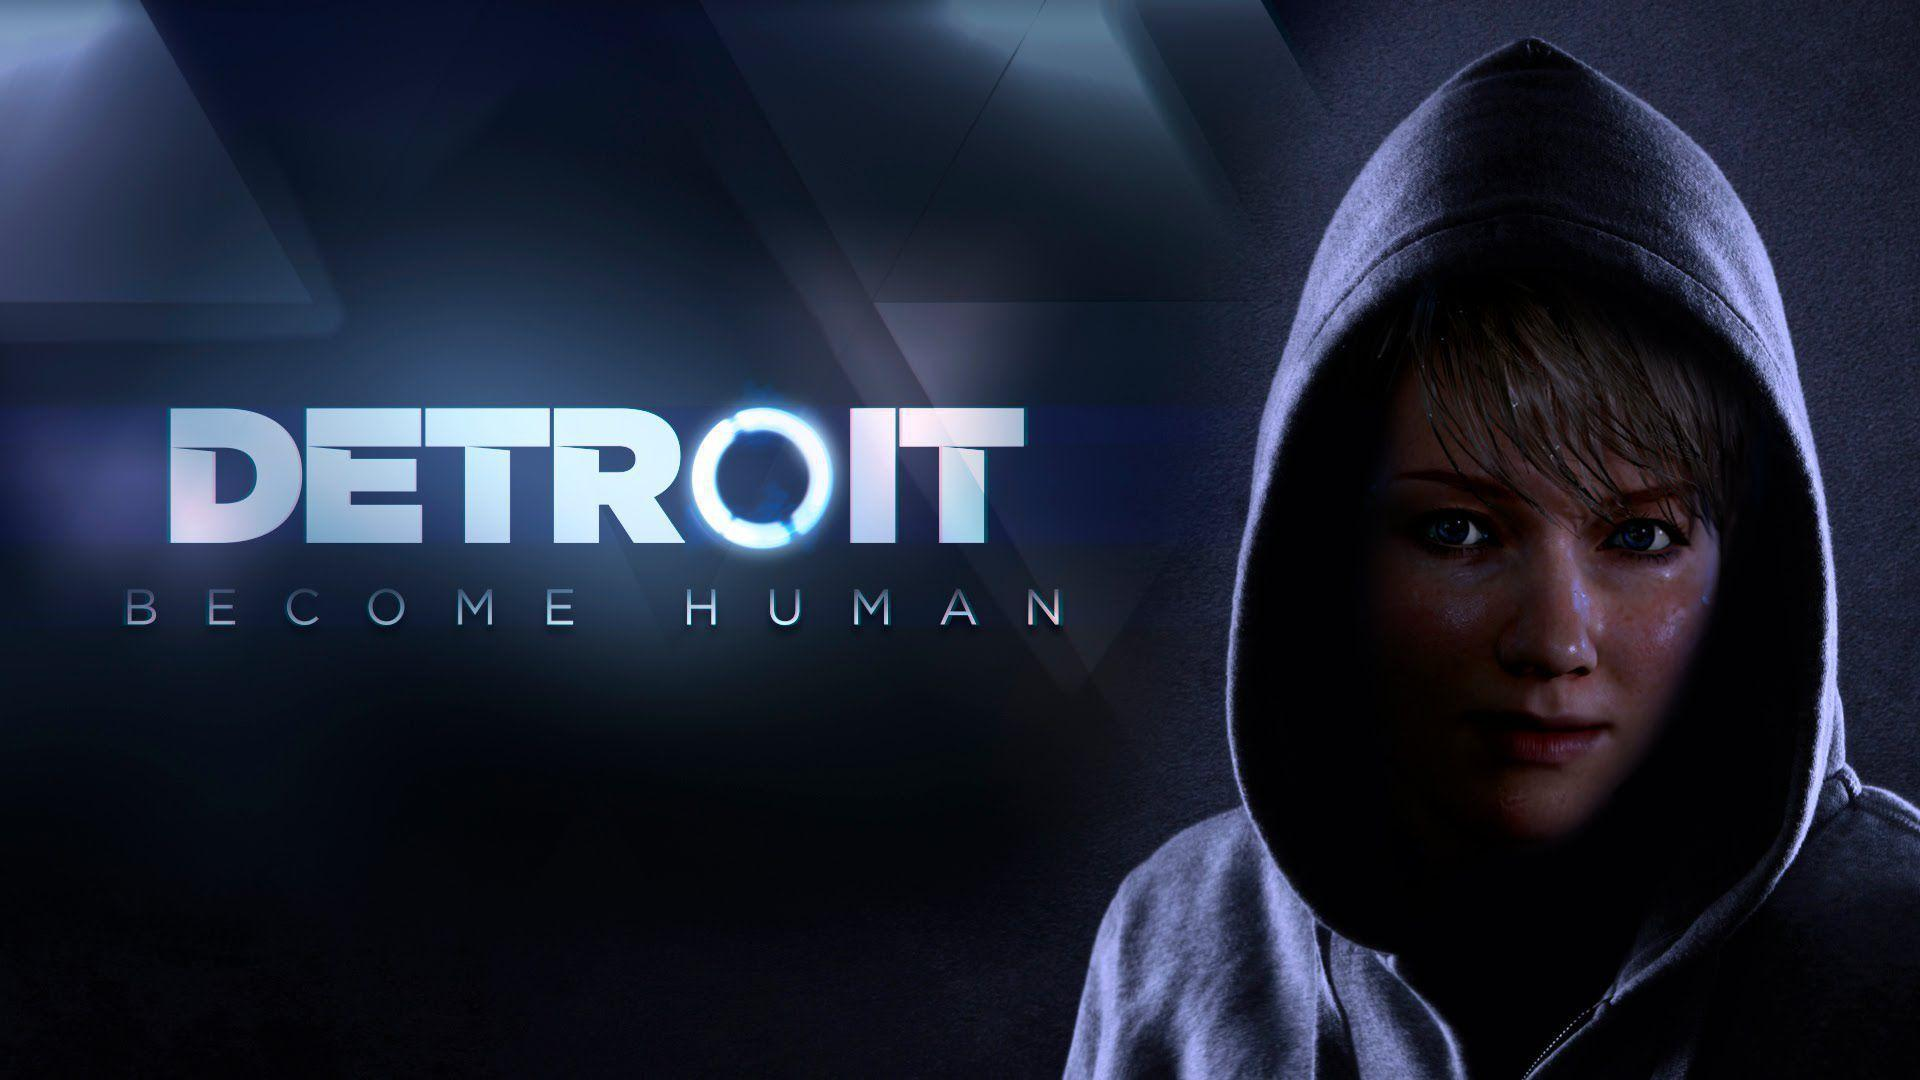 Detroit Become Human Wallpapers Wallpaper Cave